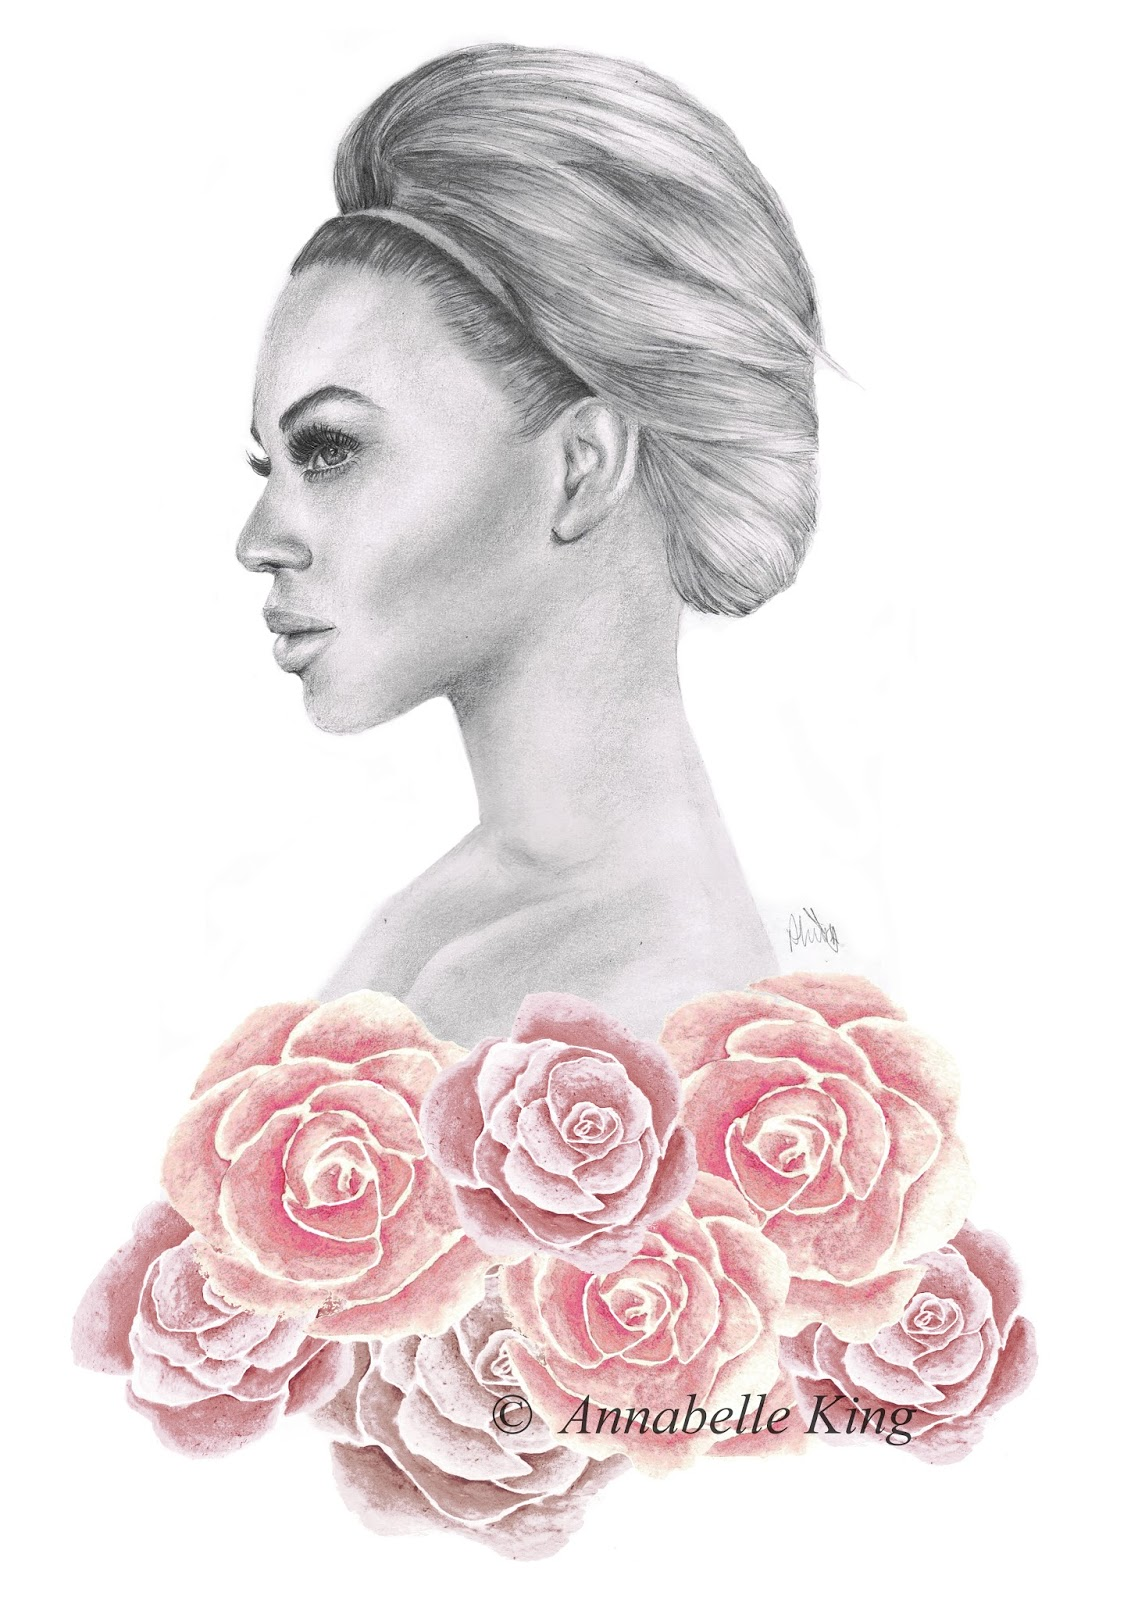 http://www.etsy.com/uk/listing/108923033/beyonce-knowels-limited-edition-print-a4?ref=listing-shop-header-0